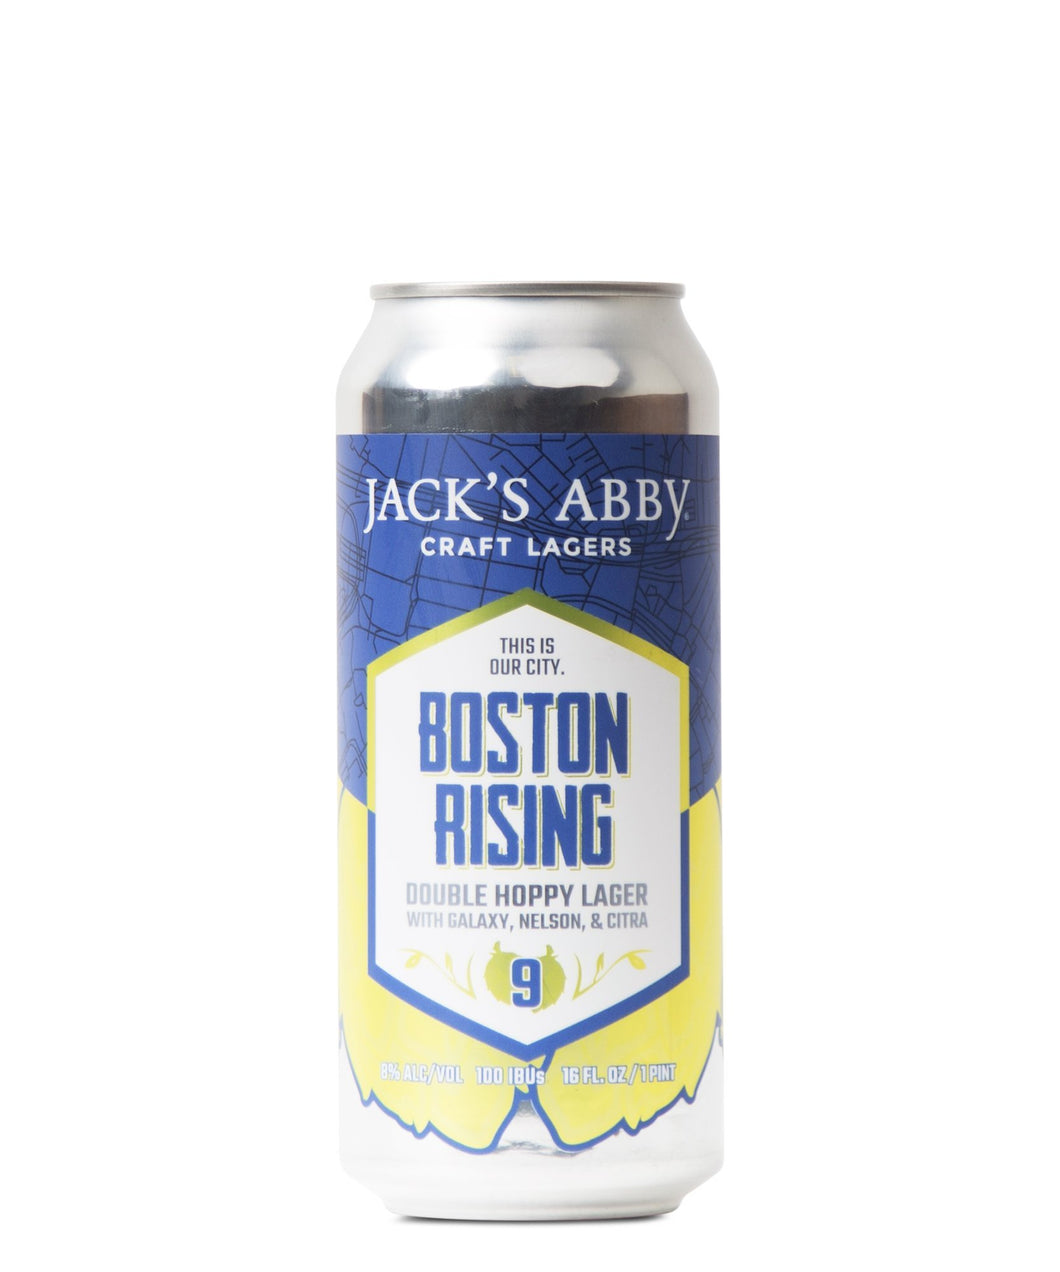 Boston Rising - Jacks Abby Craft Lagers Delivered By TapRm